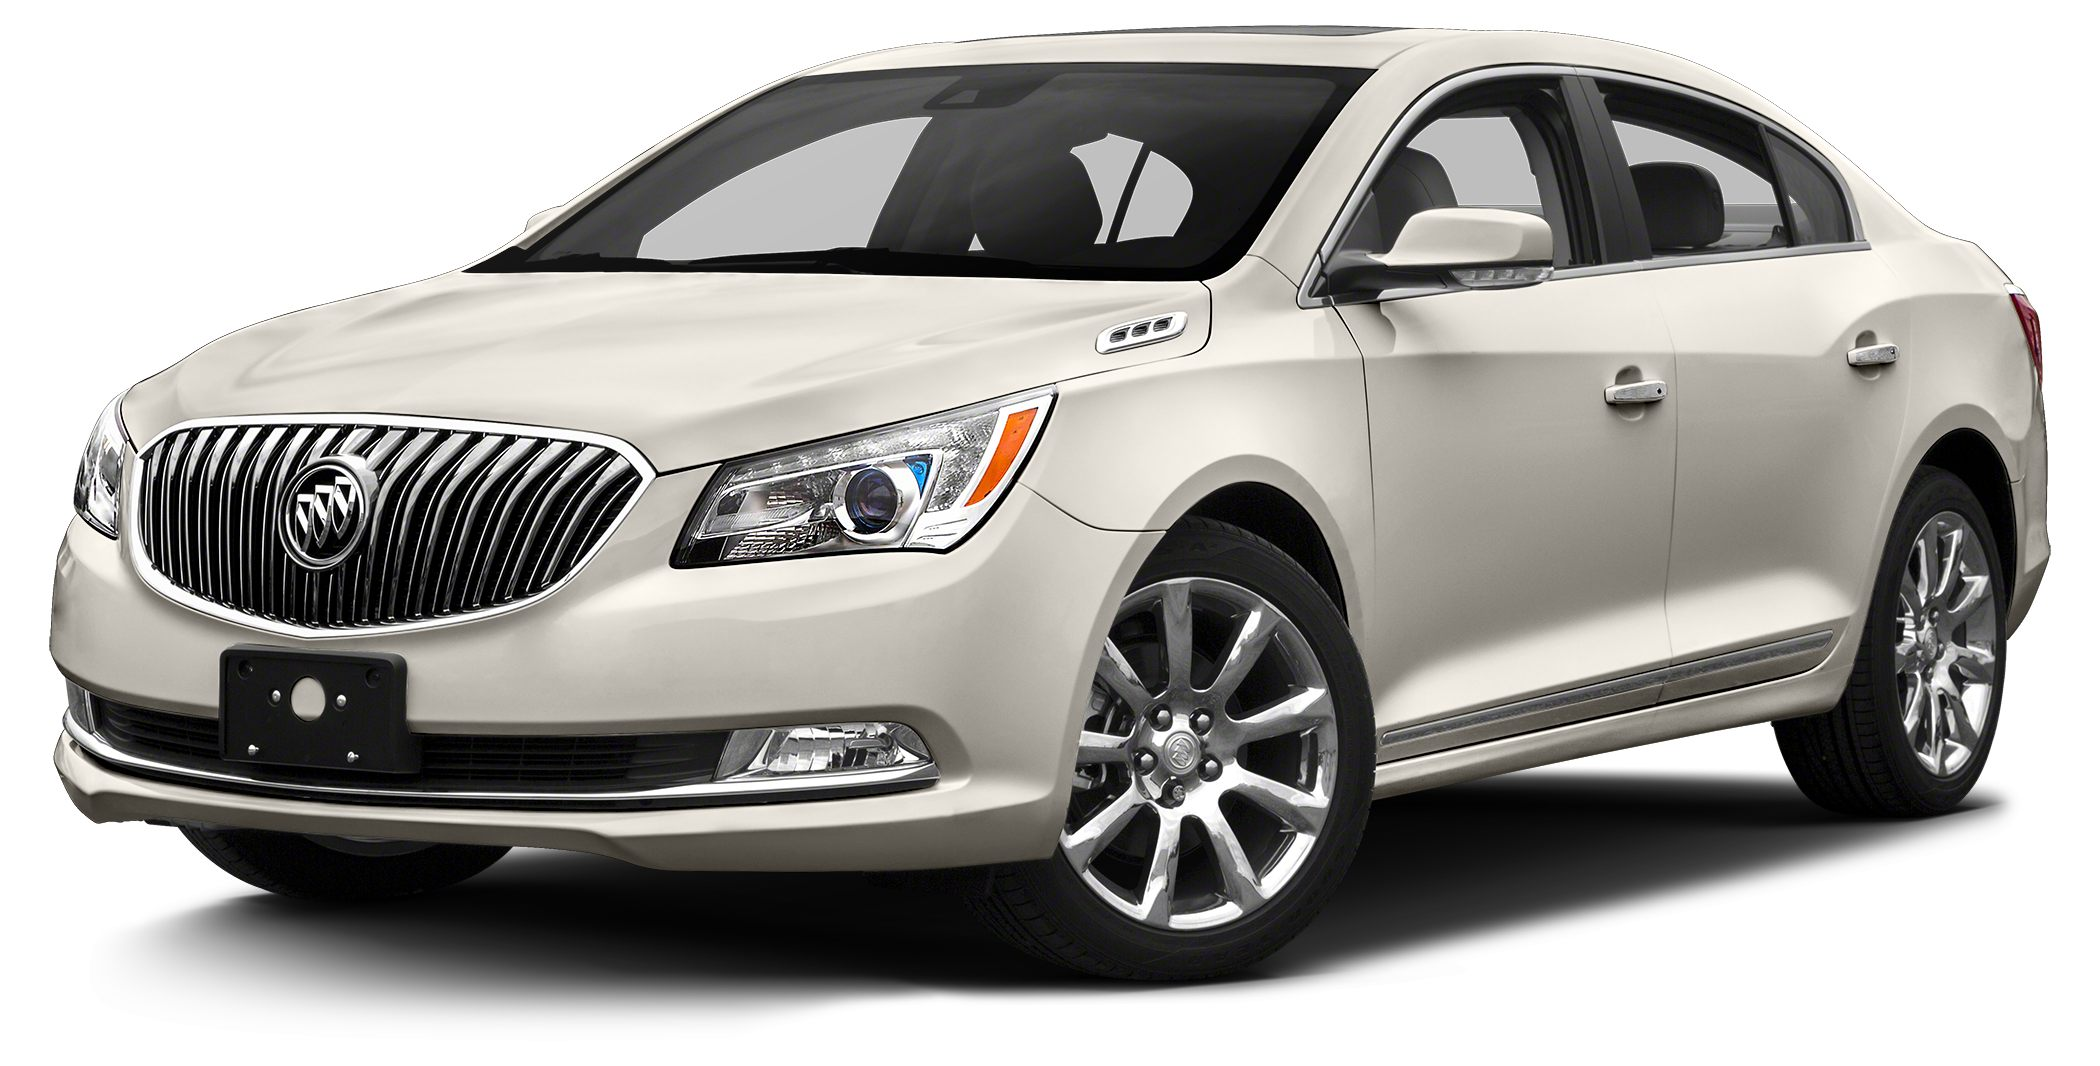 2014 Buick LaCrosse Leather Group 2014 Buick LaCrosse Leather Group AWD 6-Speed Automatic Electron